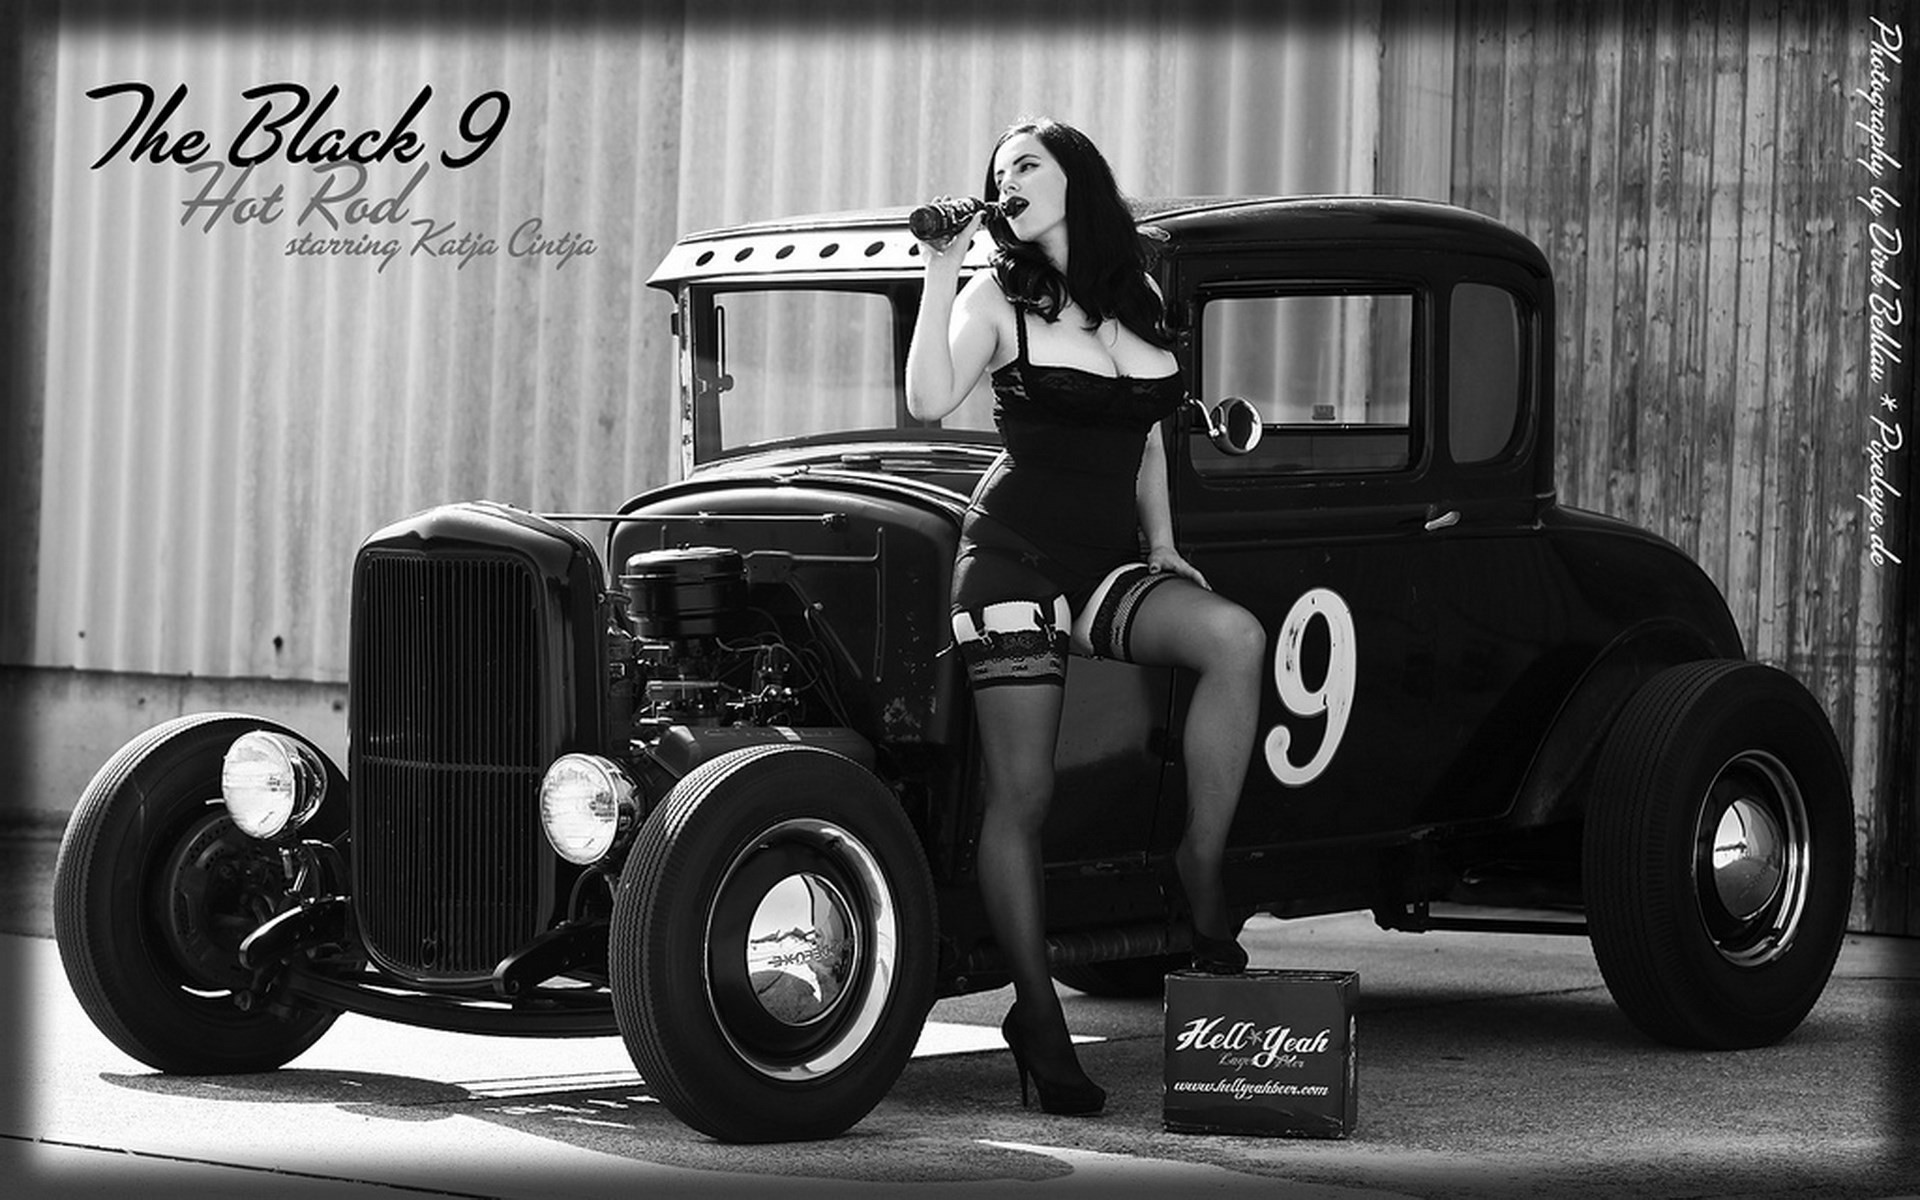 https://trunkweed.com/uploads/posts/images/51153-pin-up-girls.jpg   Of Cars  and Gals   Pinterest   Screensaver and Cars